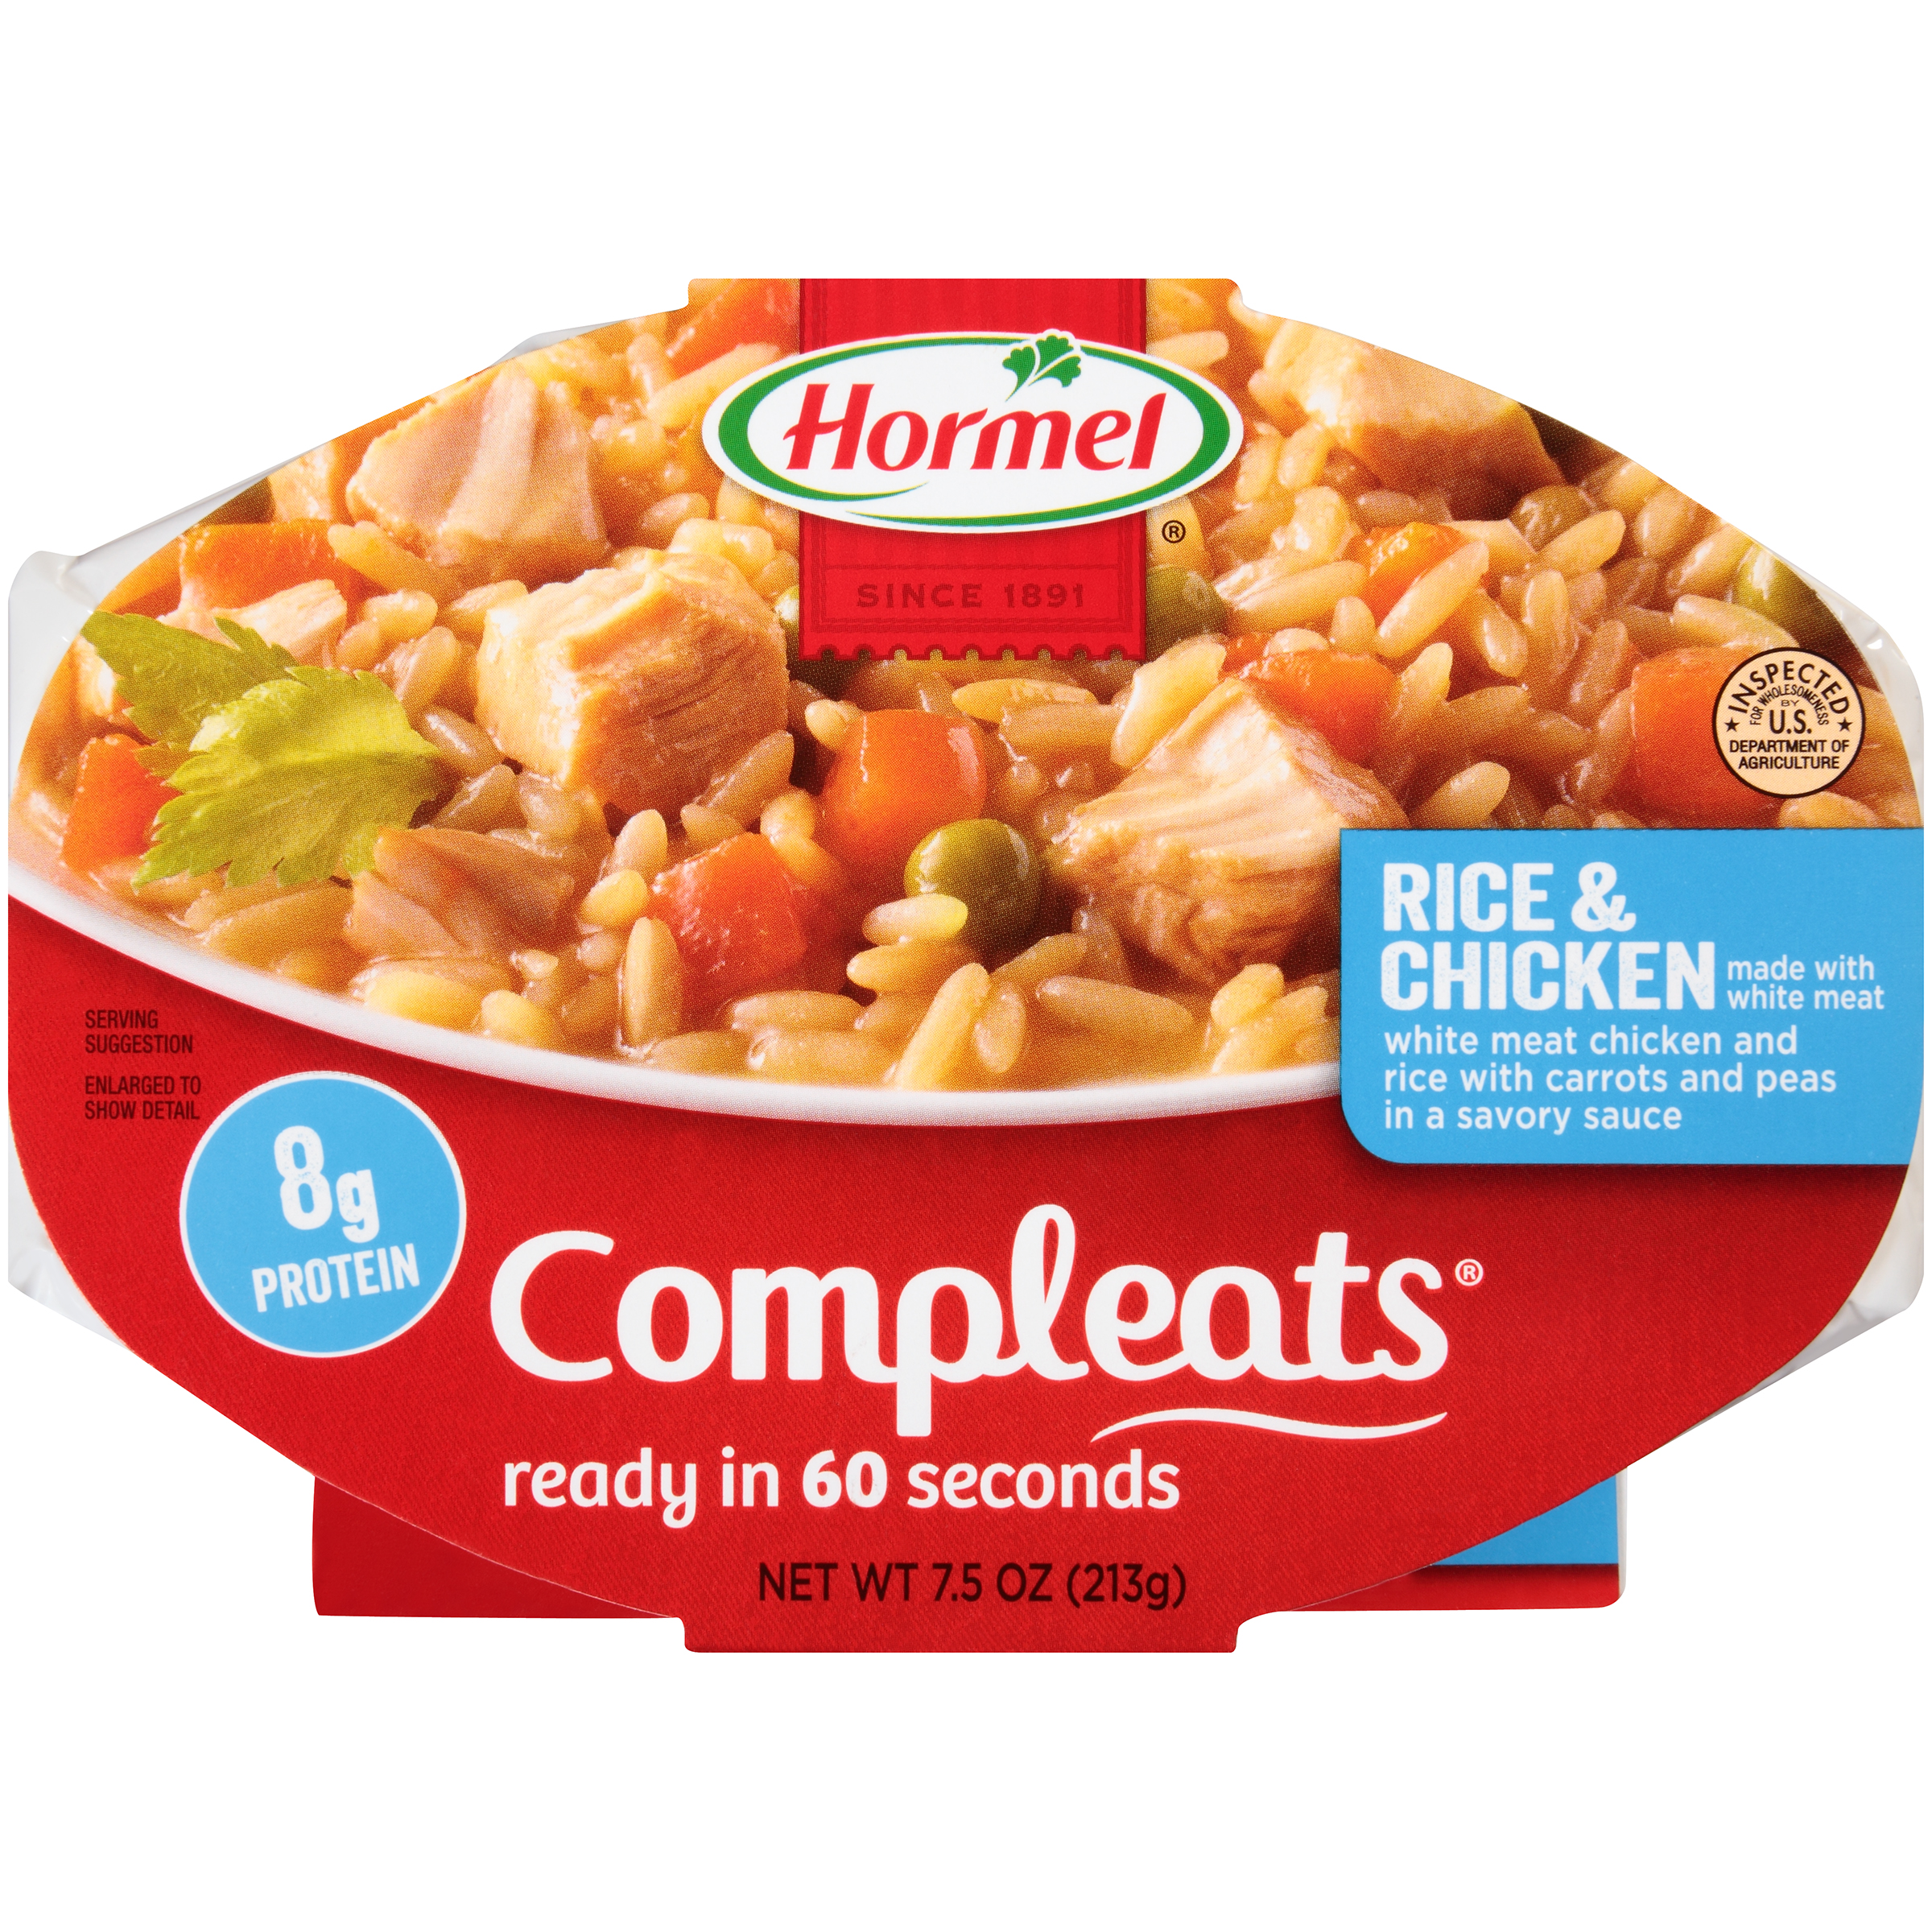 Hormel Compleats, Microwave Meal, Rice & Chicken, 7.5 oz